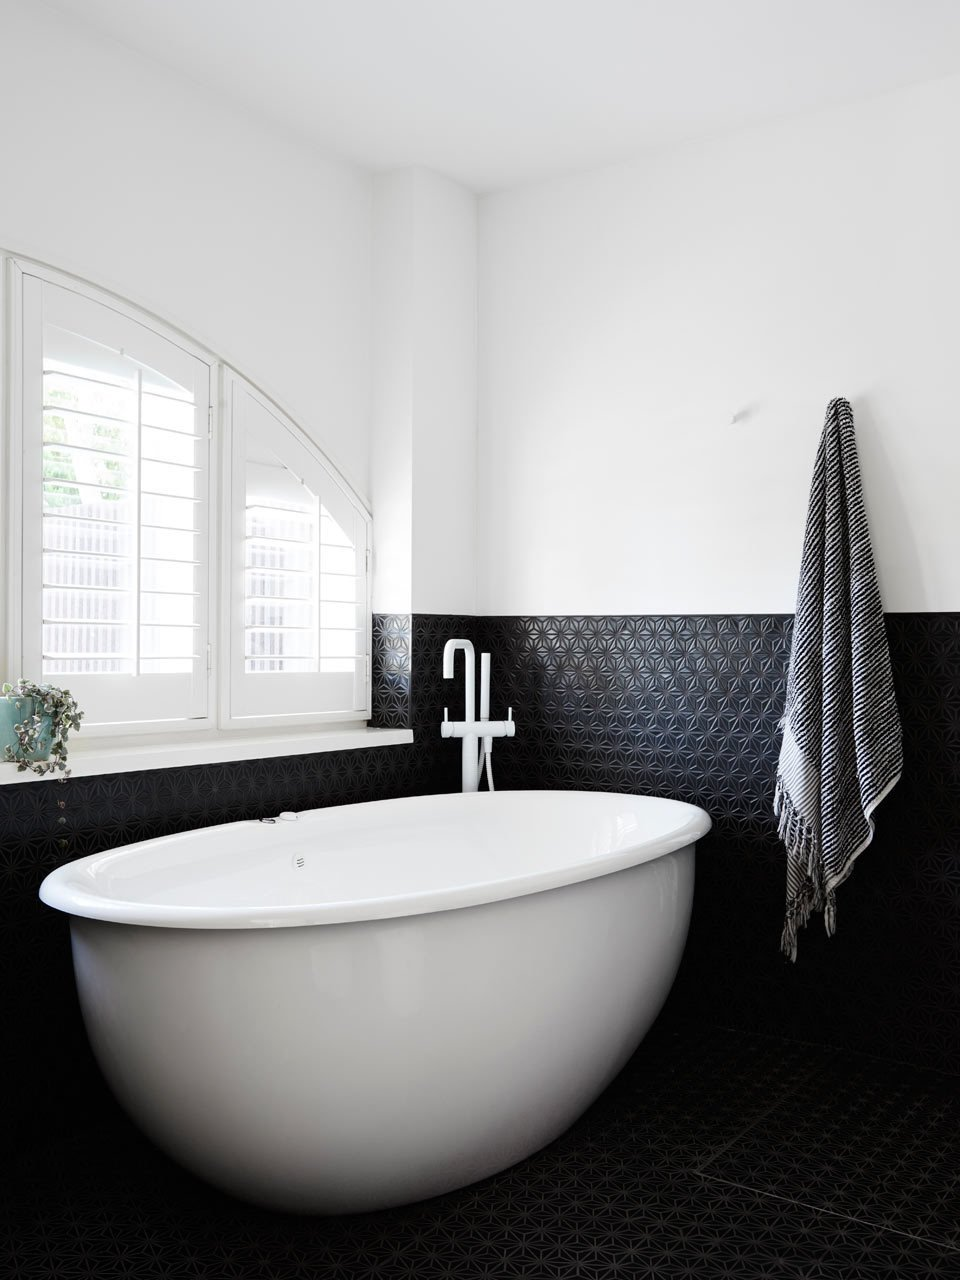 #designmilk #northbourne #architecture #melbourne #modern Photo by Eve Wilson  The new master bathroom is outfitted with charcoal Japanese mosaic tiles, which contrast the white paint and fixtures.    Tubs by Jenny Xie from A Melbourne Home is Renovated for a Growing Family